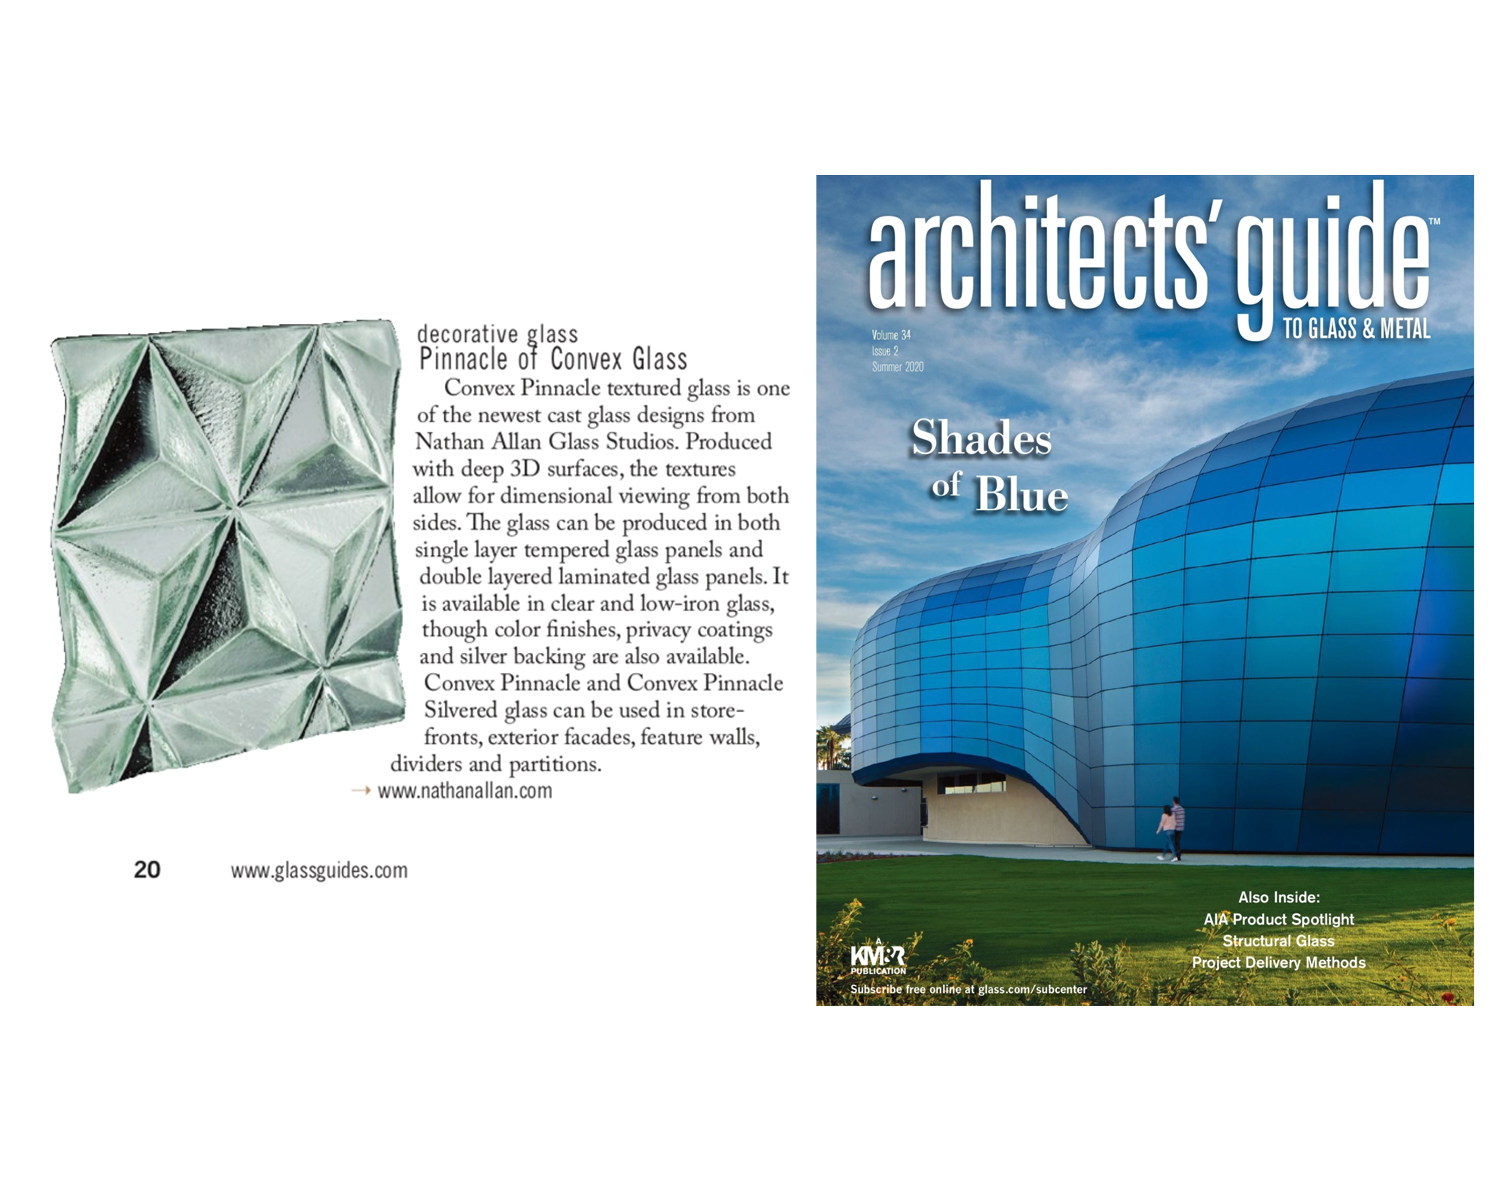 Architect's guide | Convex Pinnacle Glass